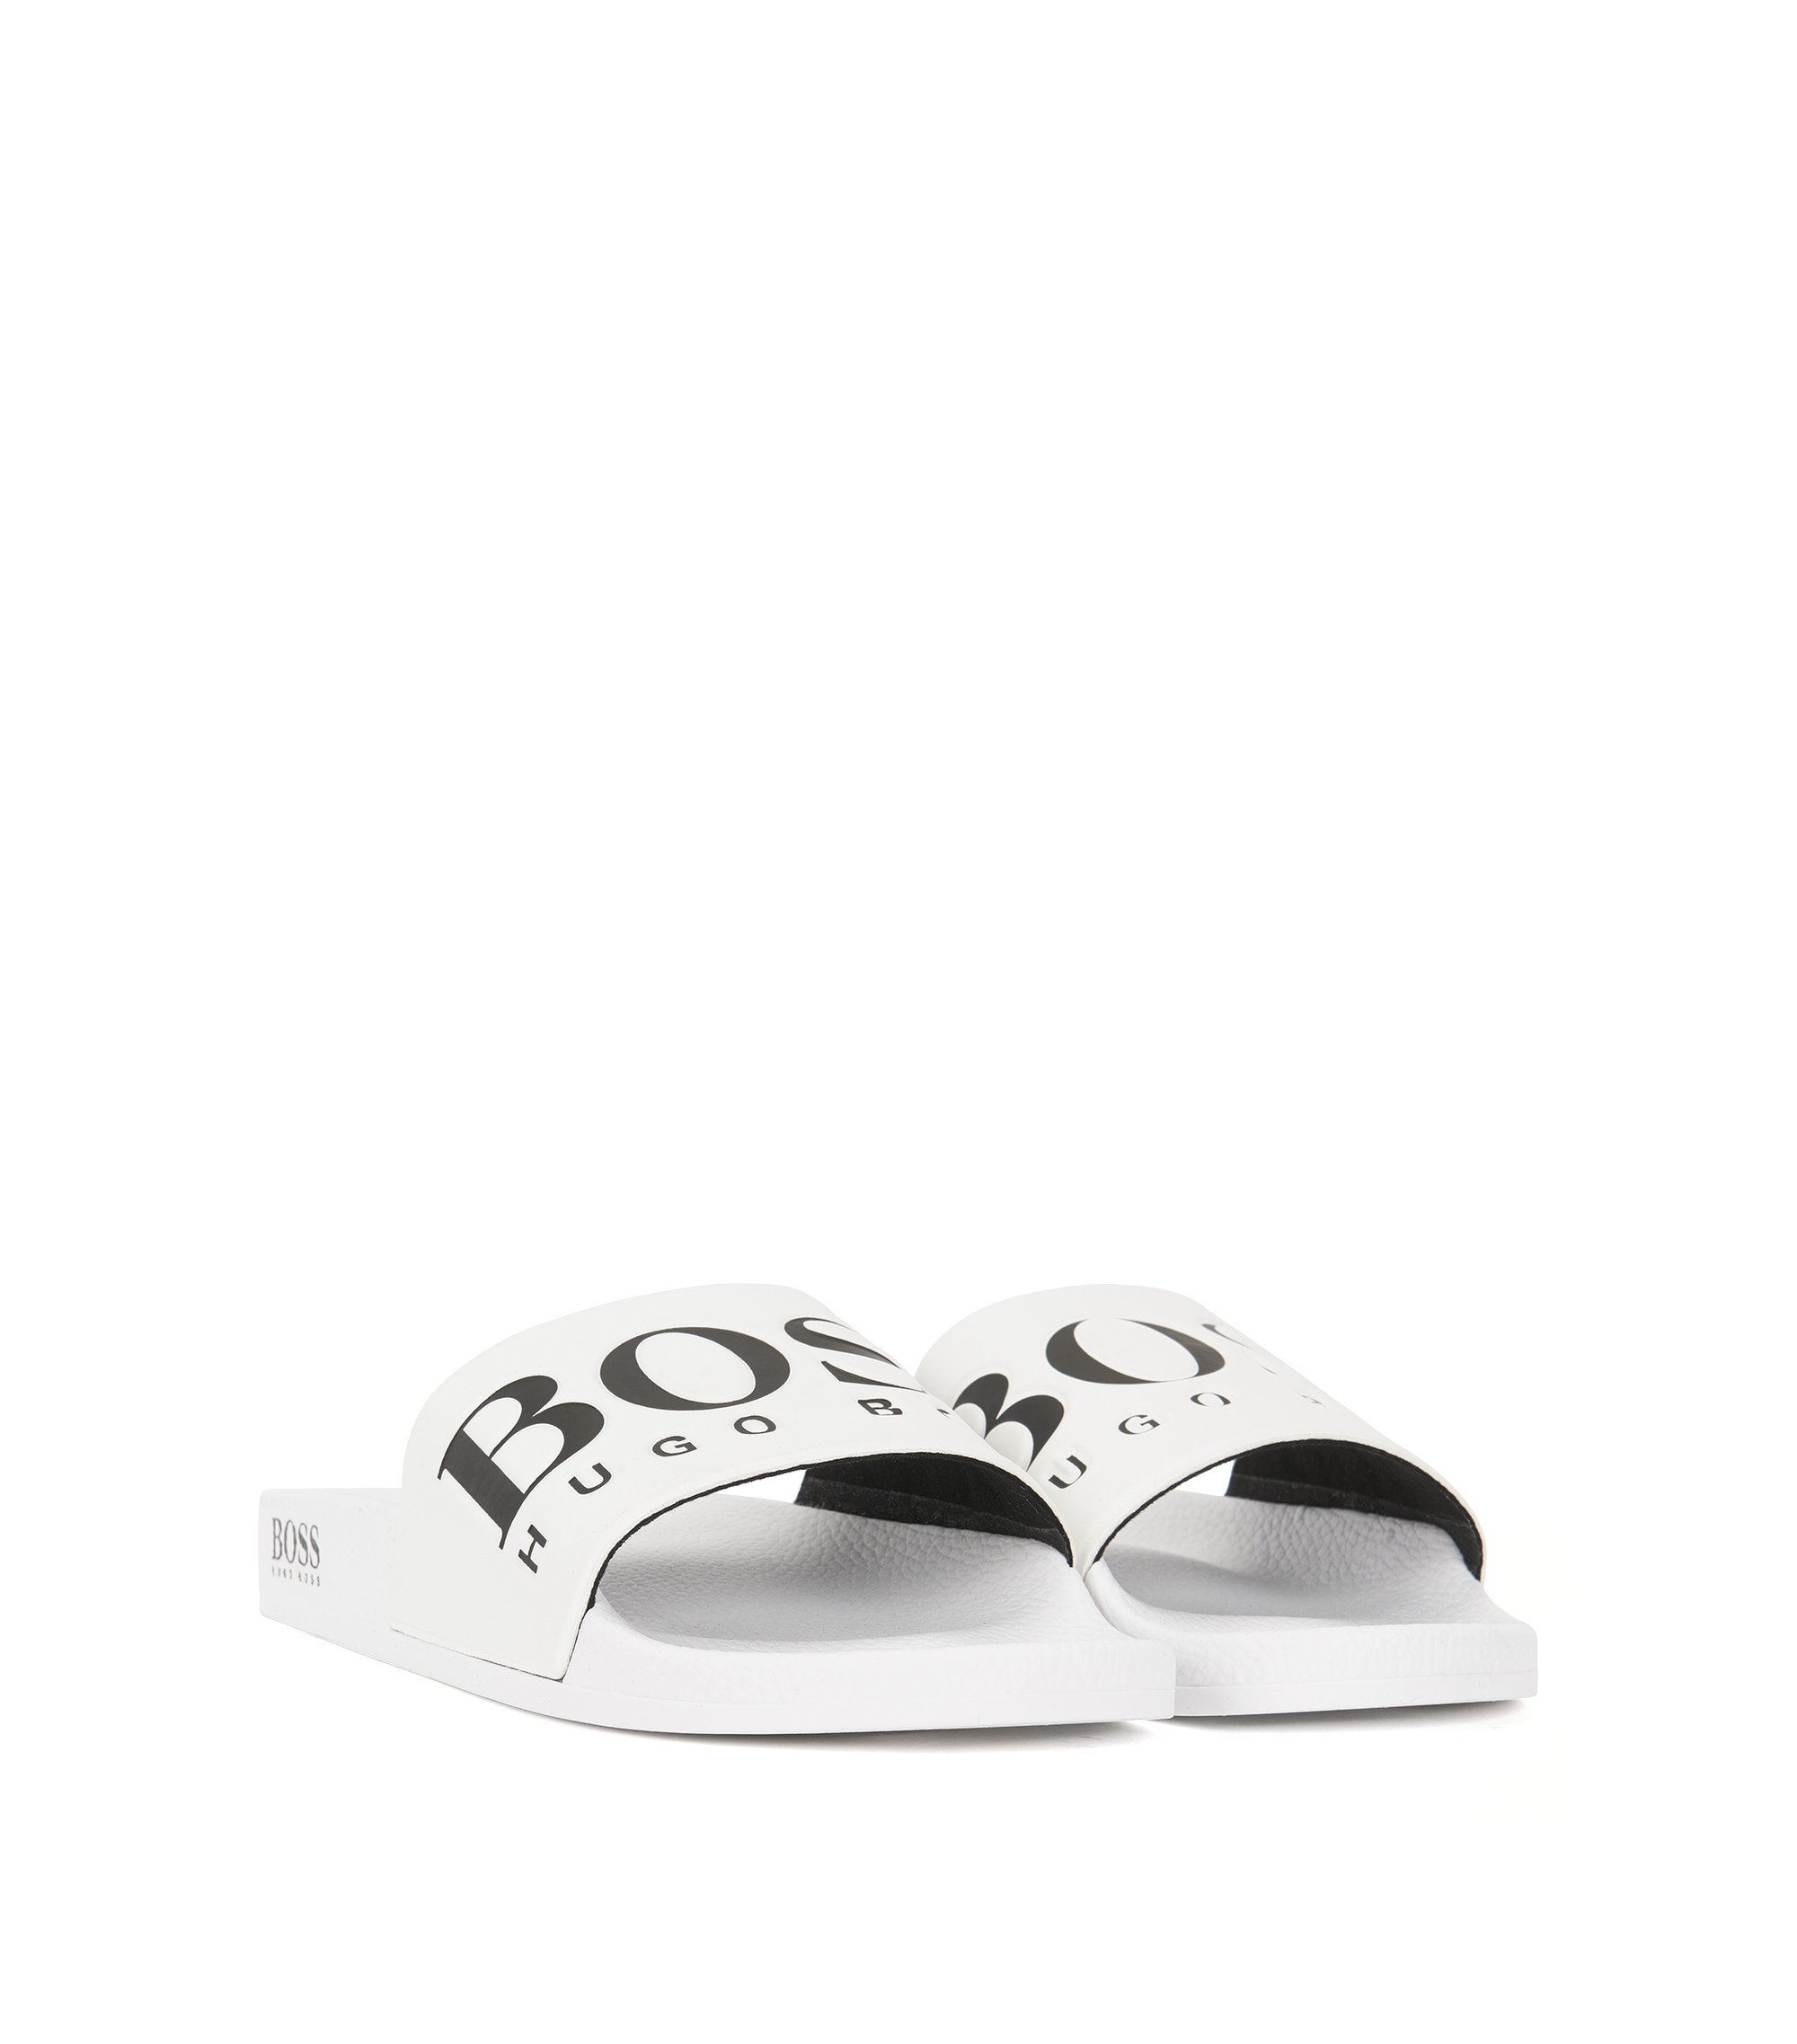 Italian-made rubber slider sandals with contrast logo, White